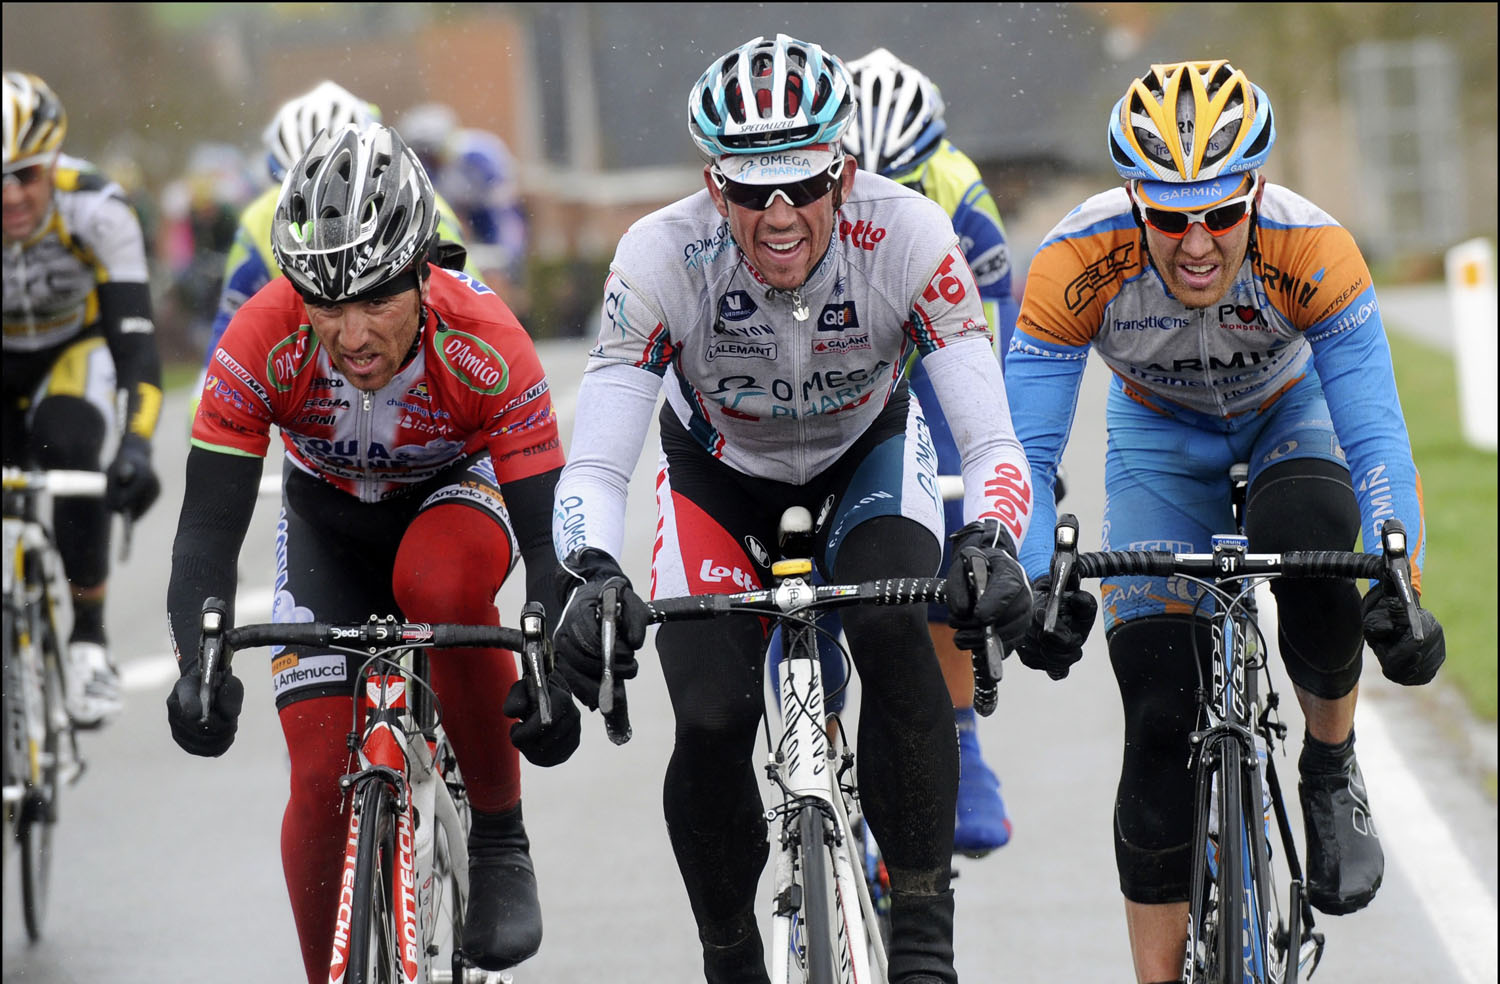 Luca Paolini, Leif Hoste and Tyler Farrar, Three Days of De Panne 2010, stage 2